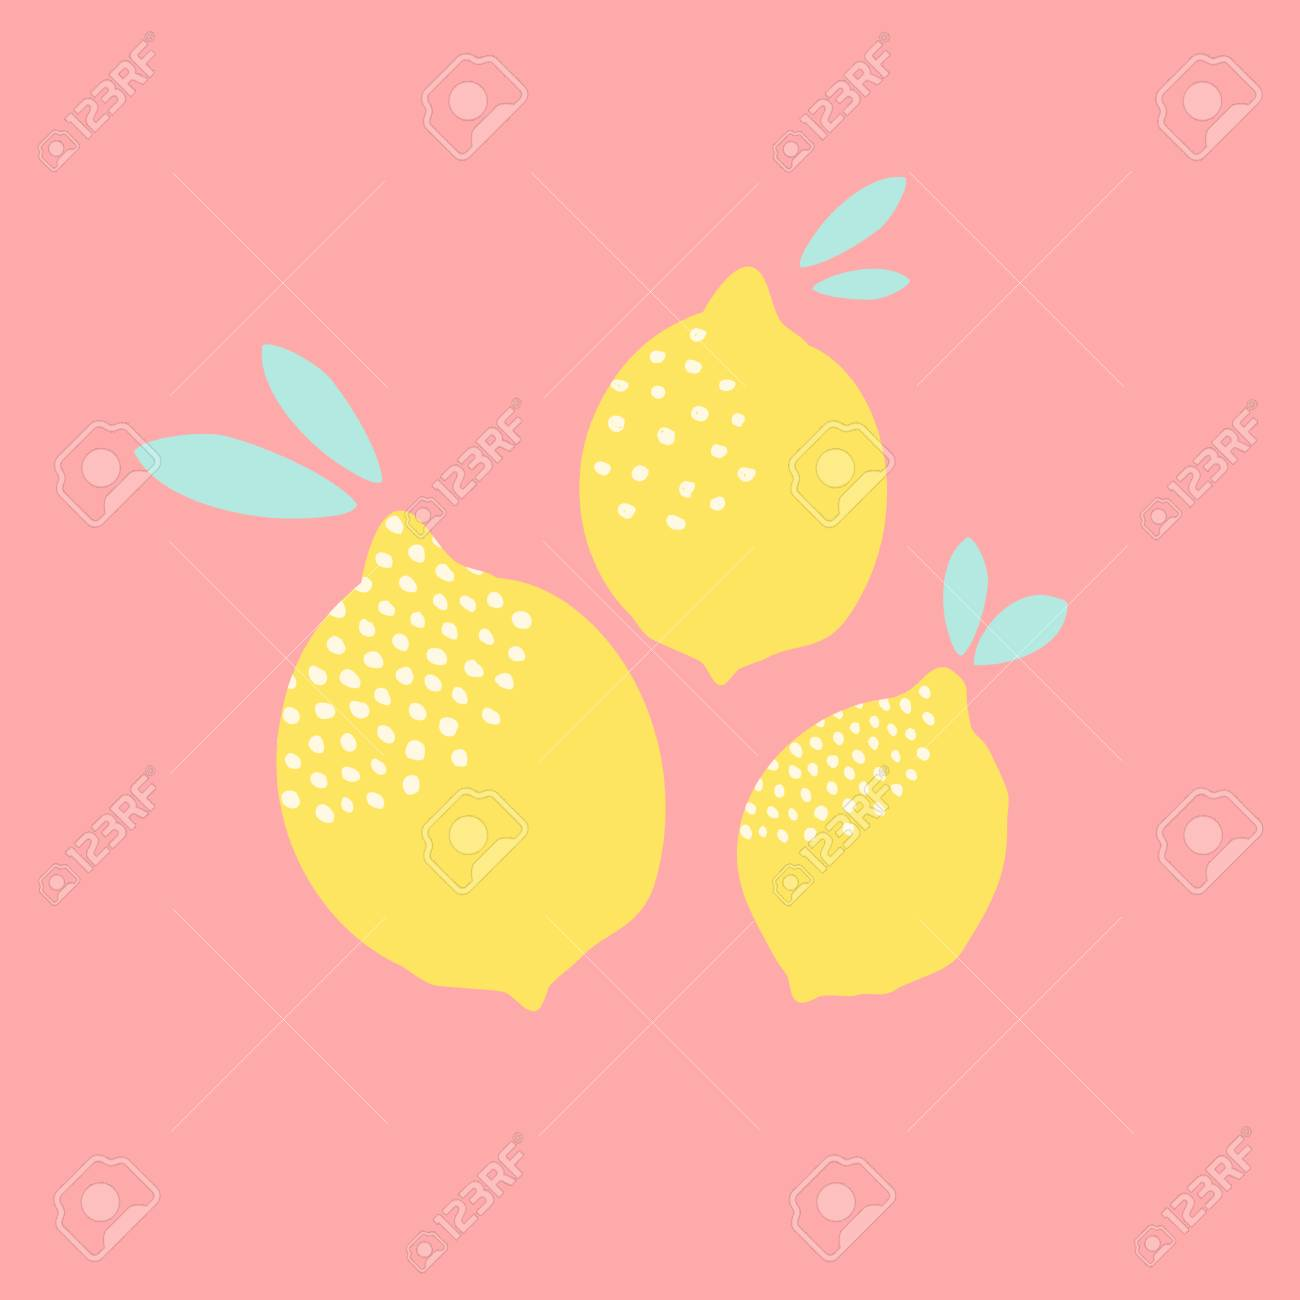 Cute Card Design With Lemons In Yellow On Pastel Pink Background ...